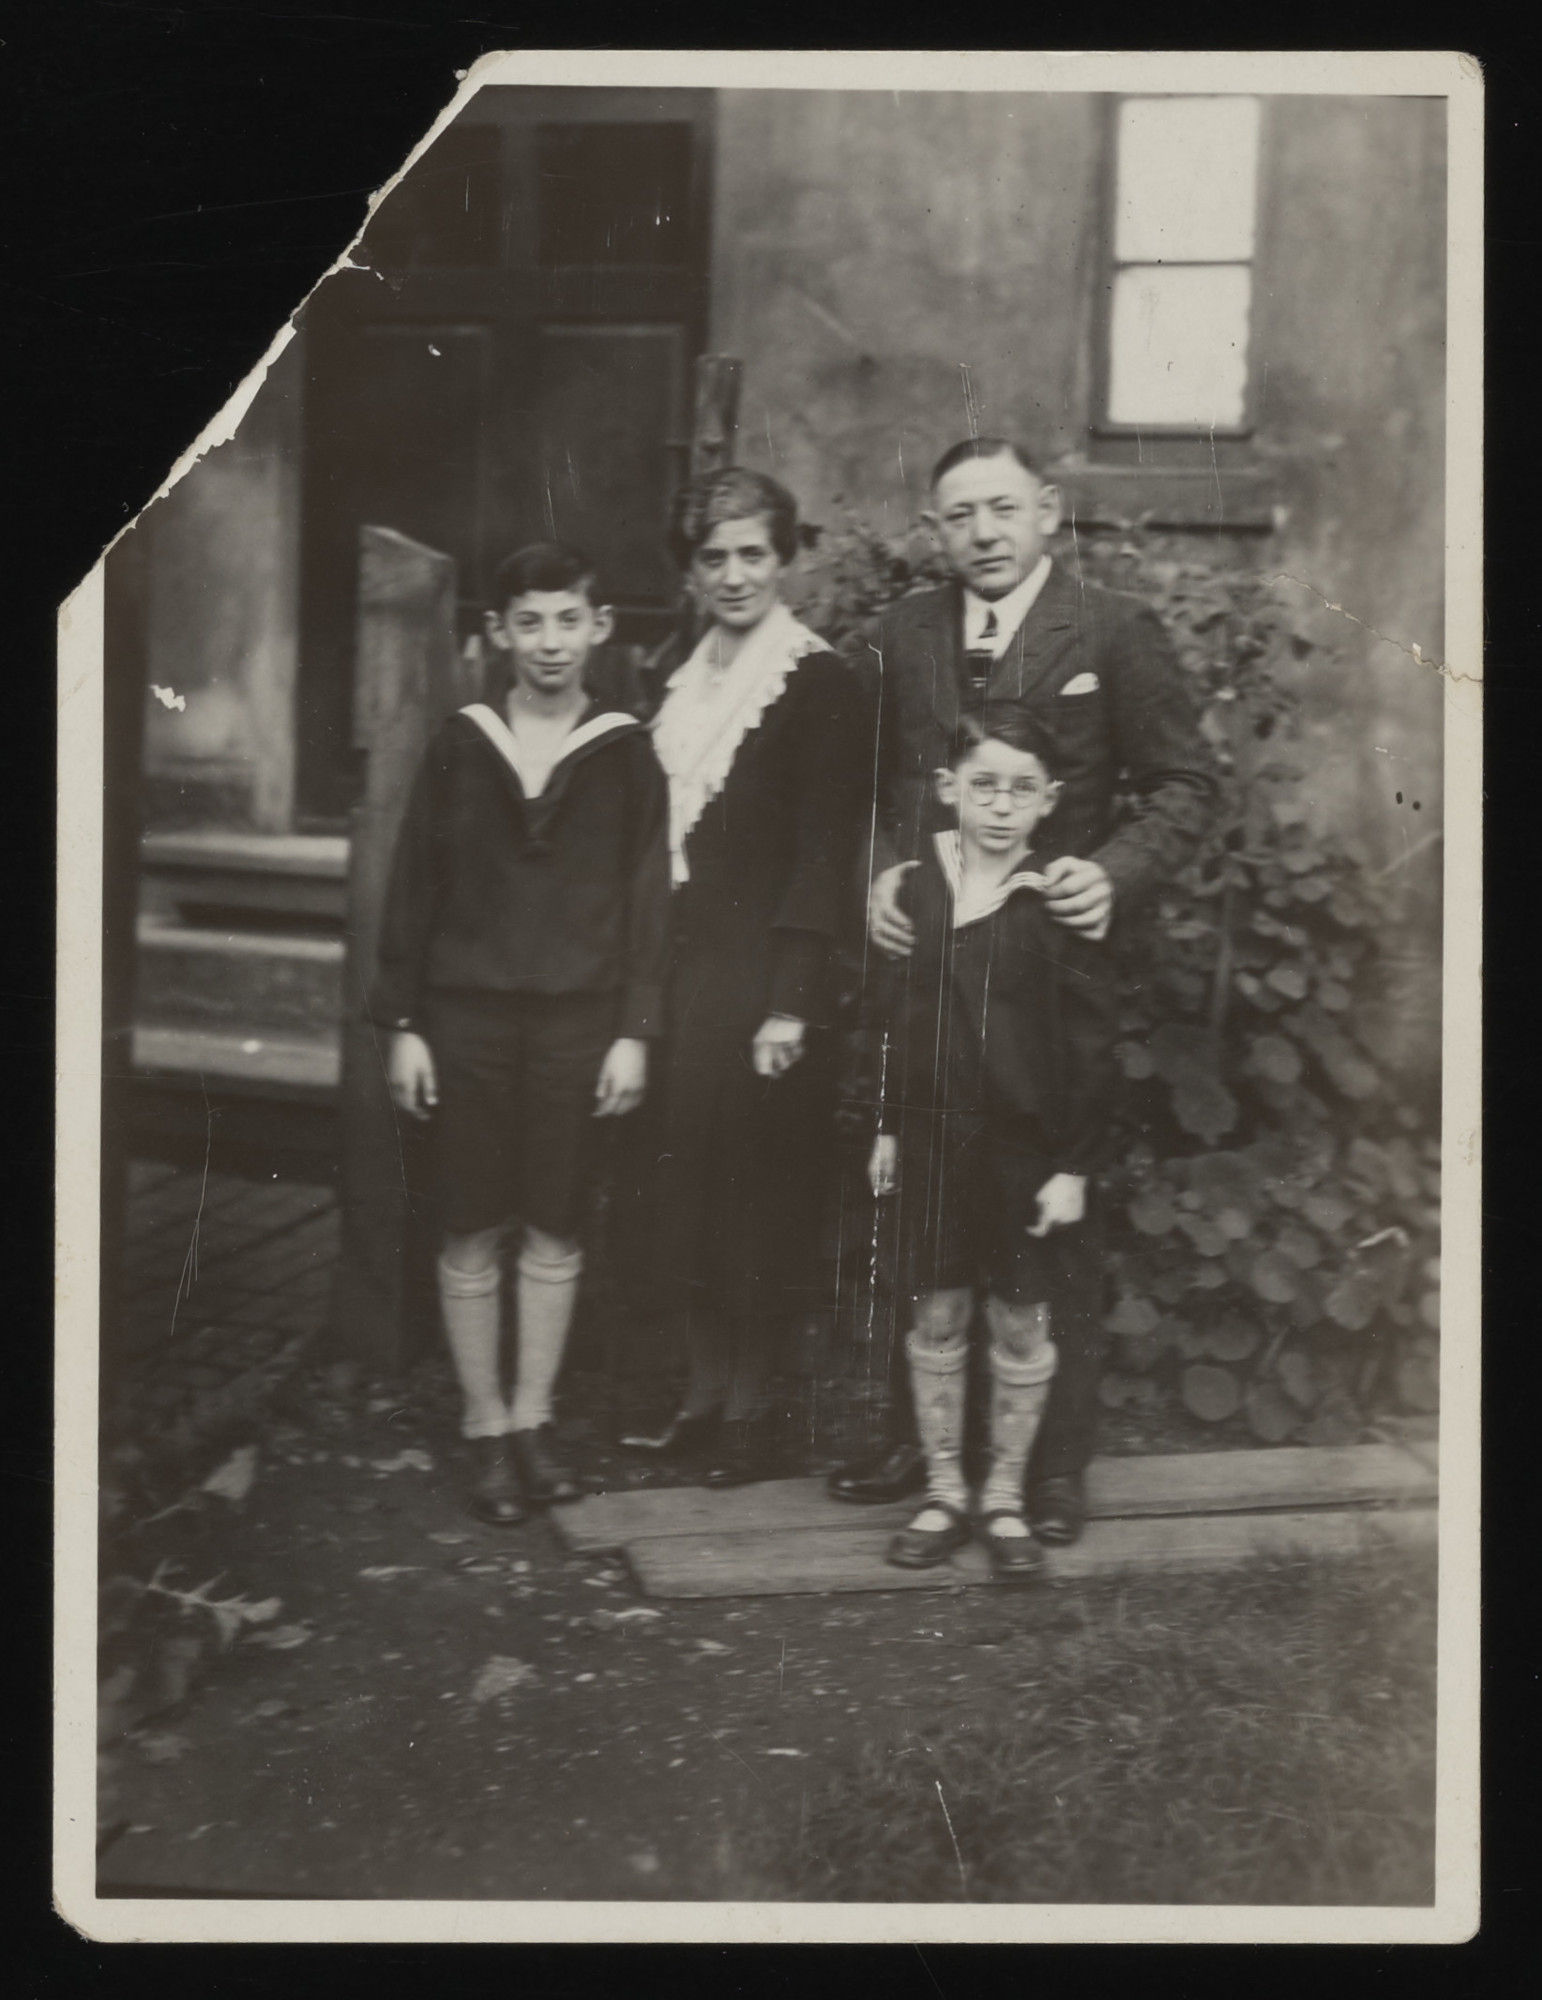 Portrait of the Dingfelder family.  Pictured from left to right are: Martin, Johanna, Leopold, and (in front of him) Rudi Dingfelder.